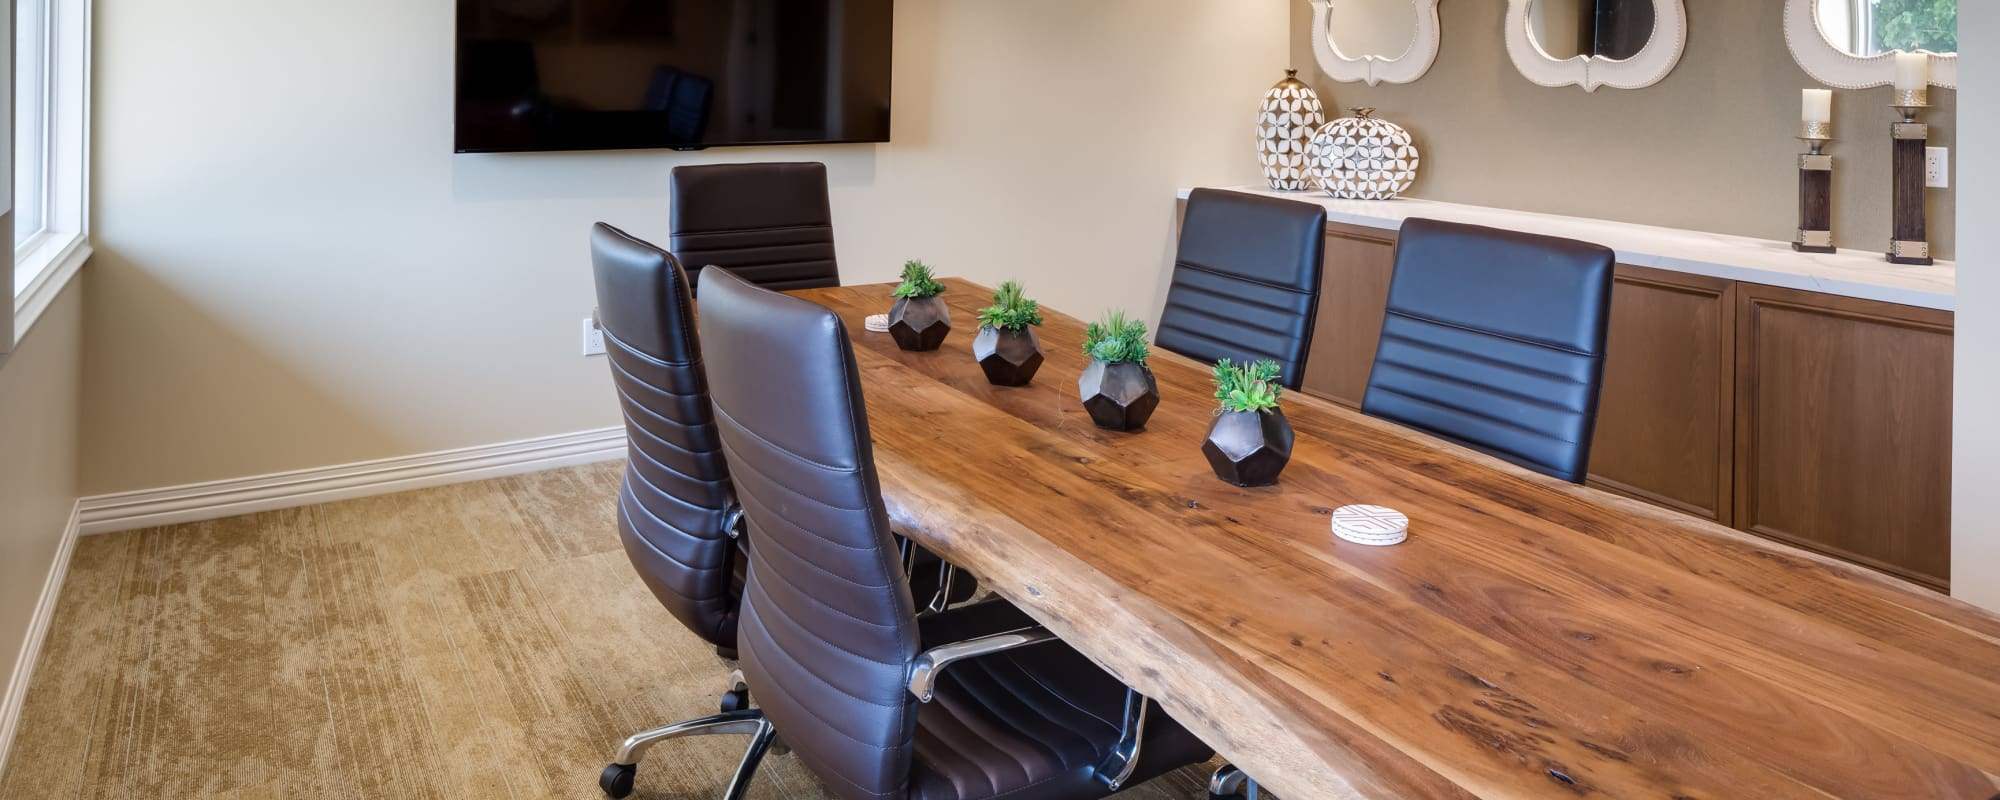 Meeting room at The Montera in La Mesa, California